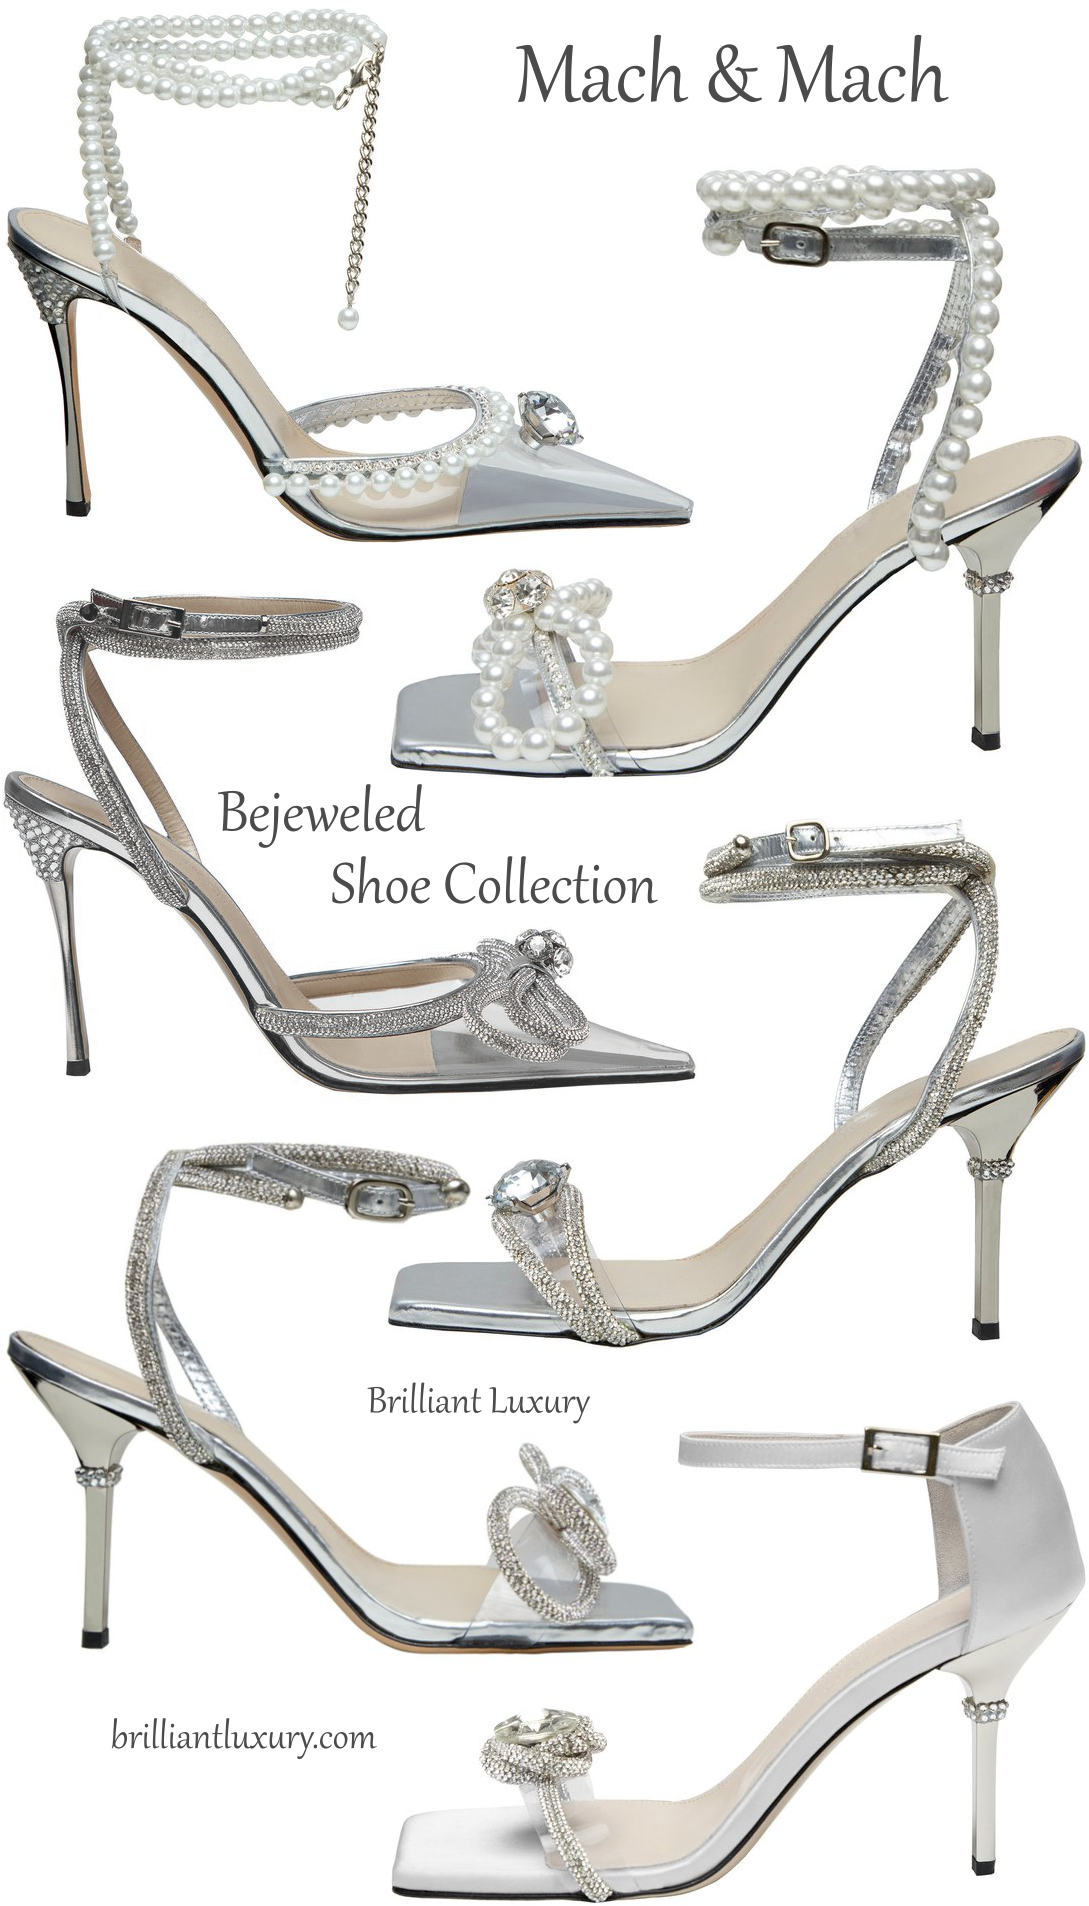 Mach & Mach bejeweled evening shoes #brilliantluxury